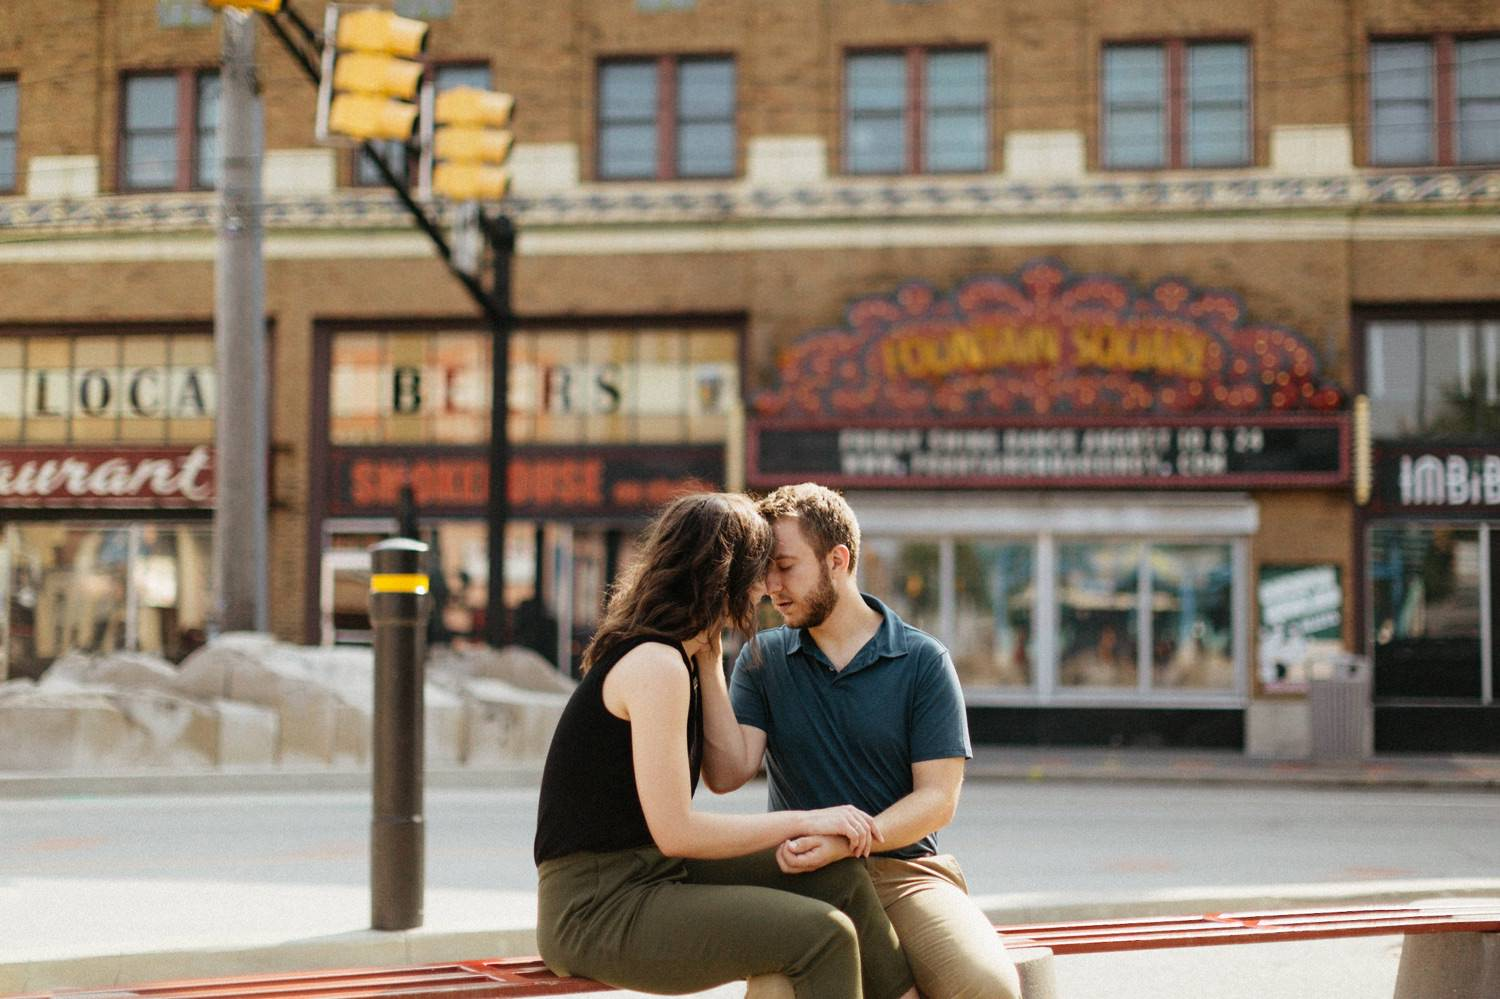 downtown-indianapolis-engagement-session-rooftop-indianapolis-engagement-photographer-kelly-marcelo-photography001.JPG